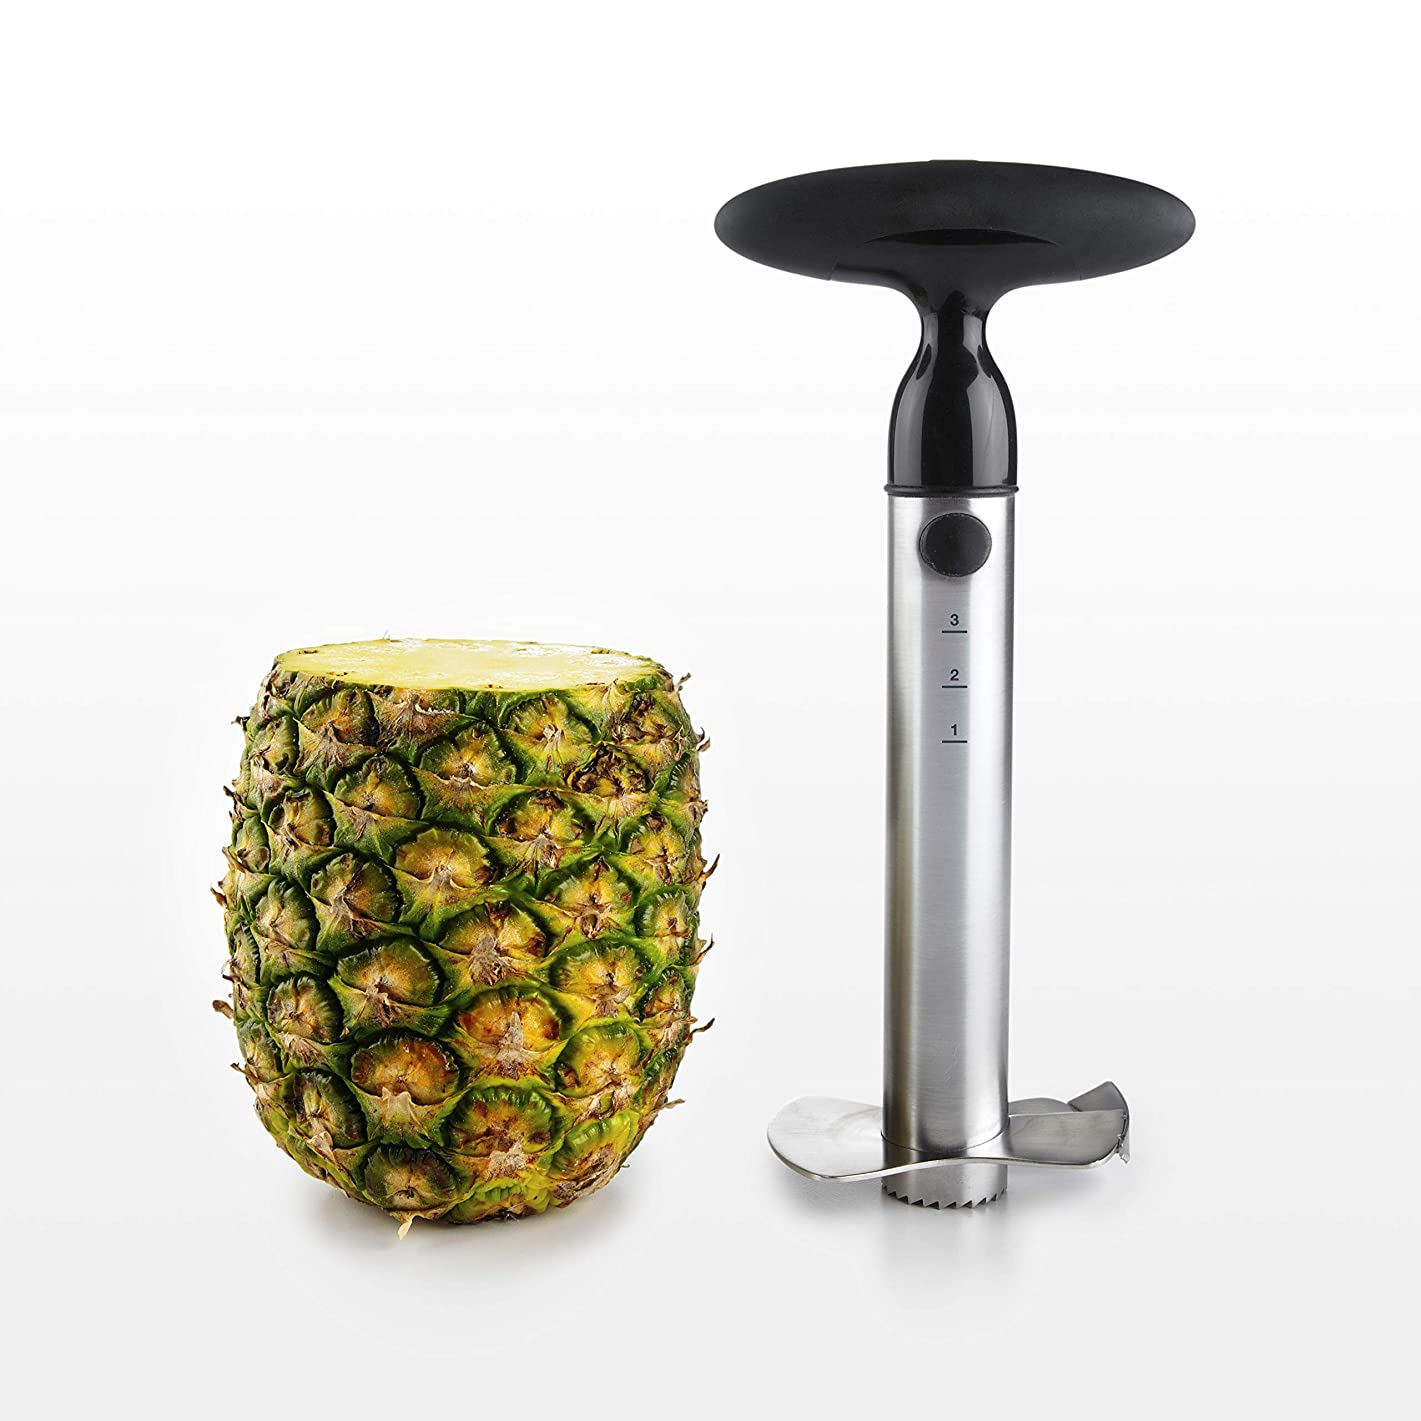 OXO Good Grips Stainless Steel Ratcheting Pineapple Slicer with Depth Guide